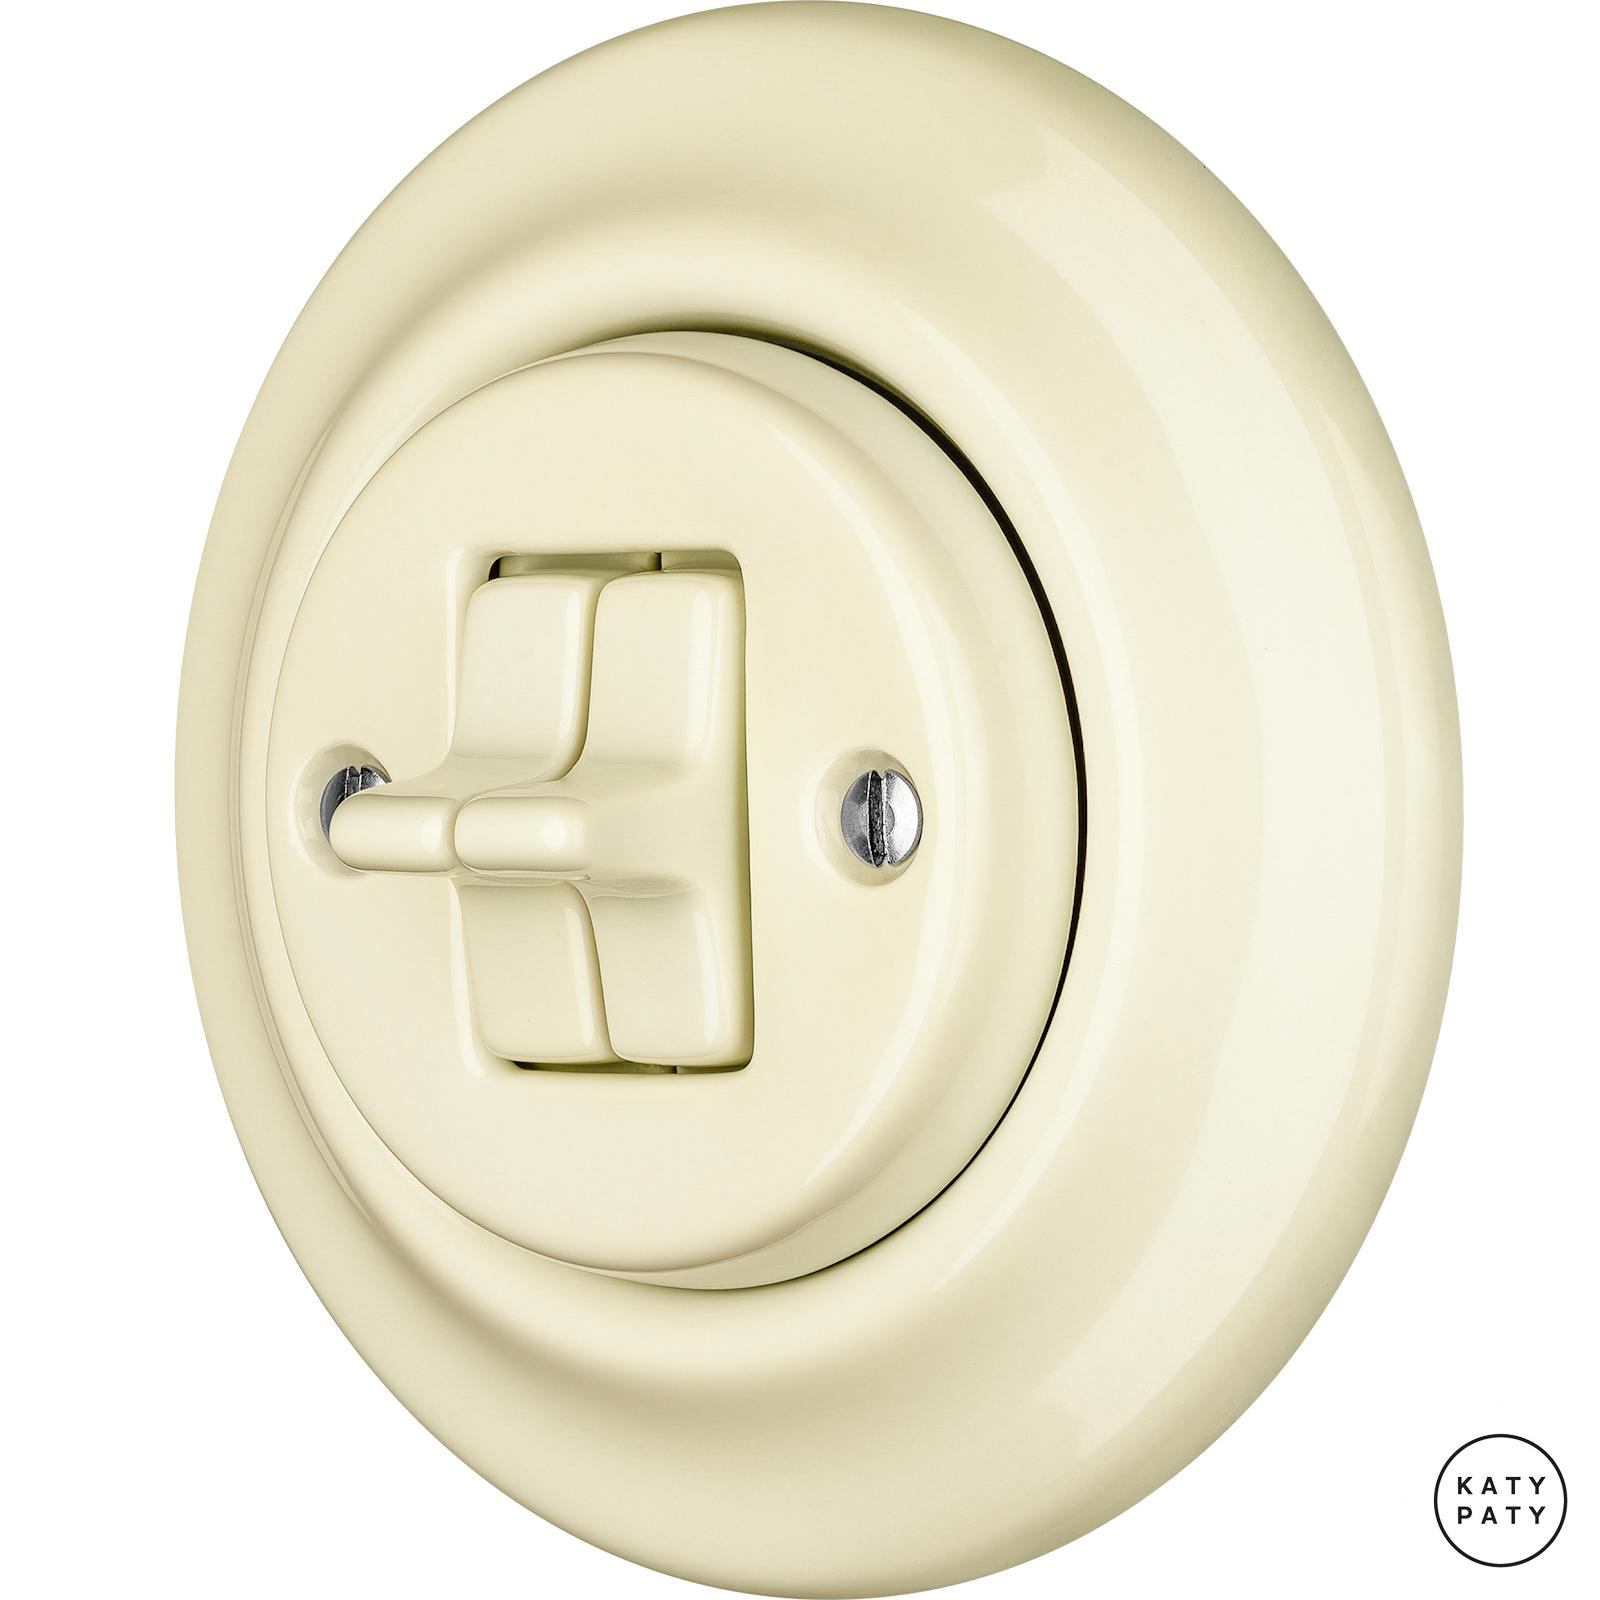 Porcelain toggle switches - a 2 gang ()  - PNOE FLAVA | Katy Paty